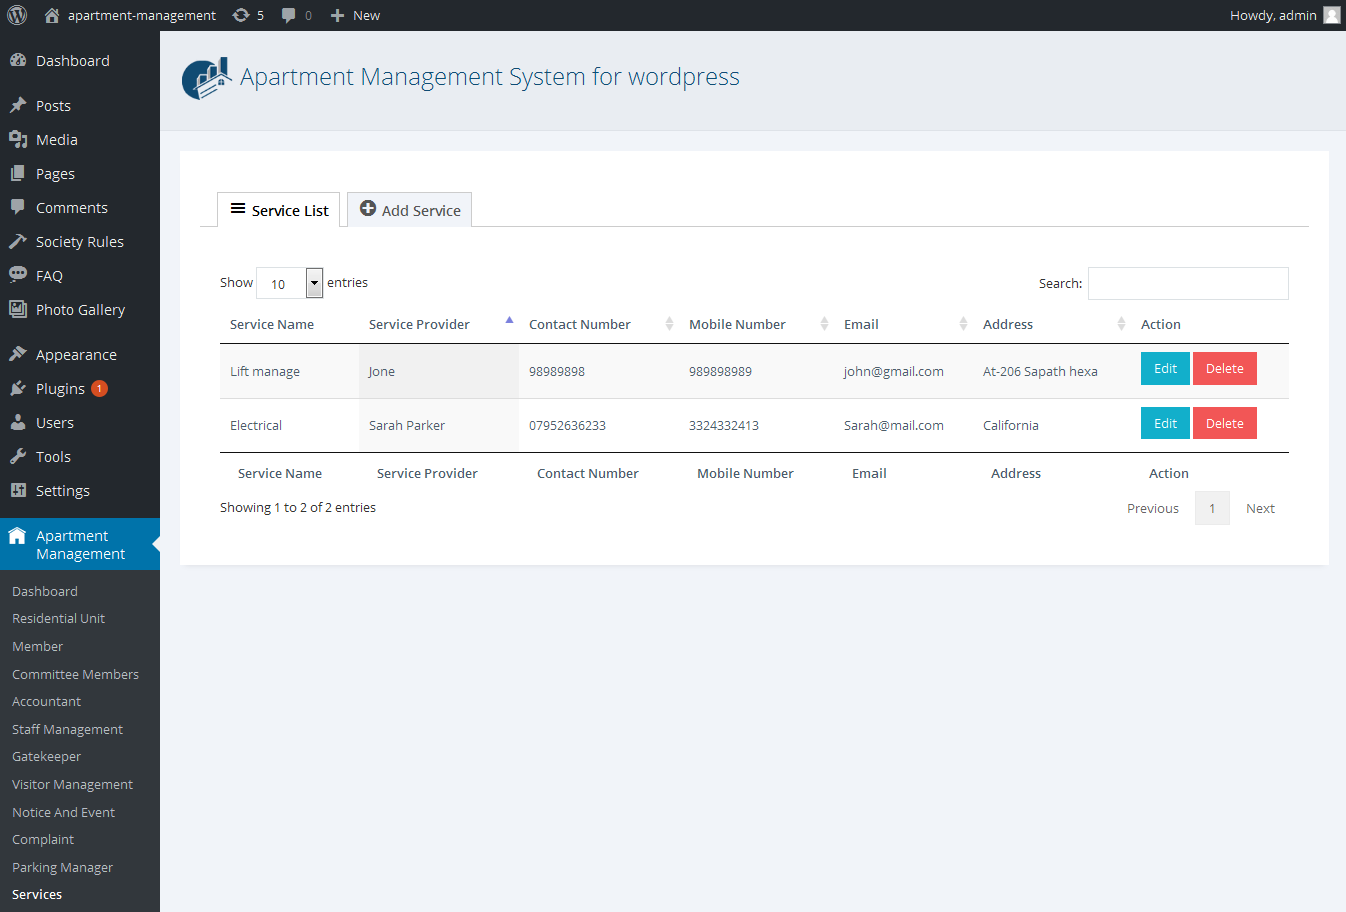 WPAMS - Apartment Management System for wordpress by ...